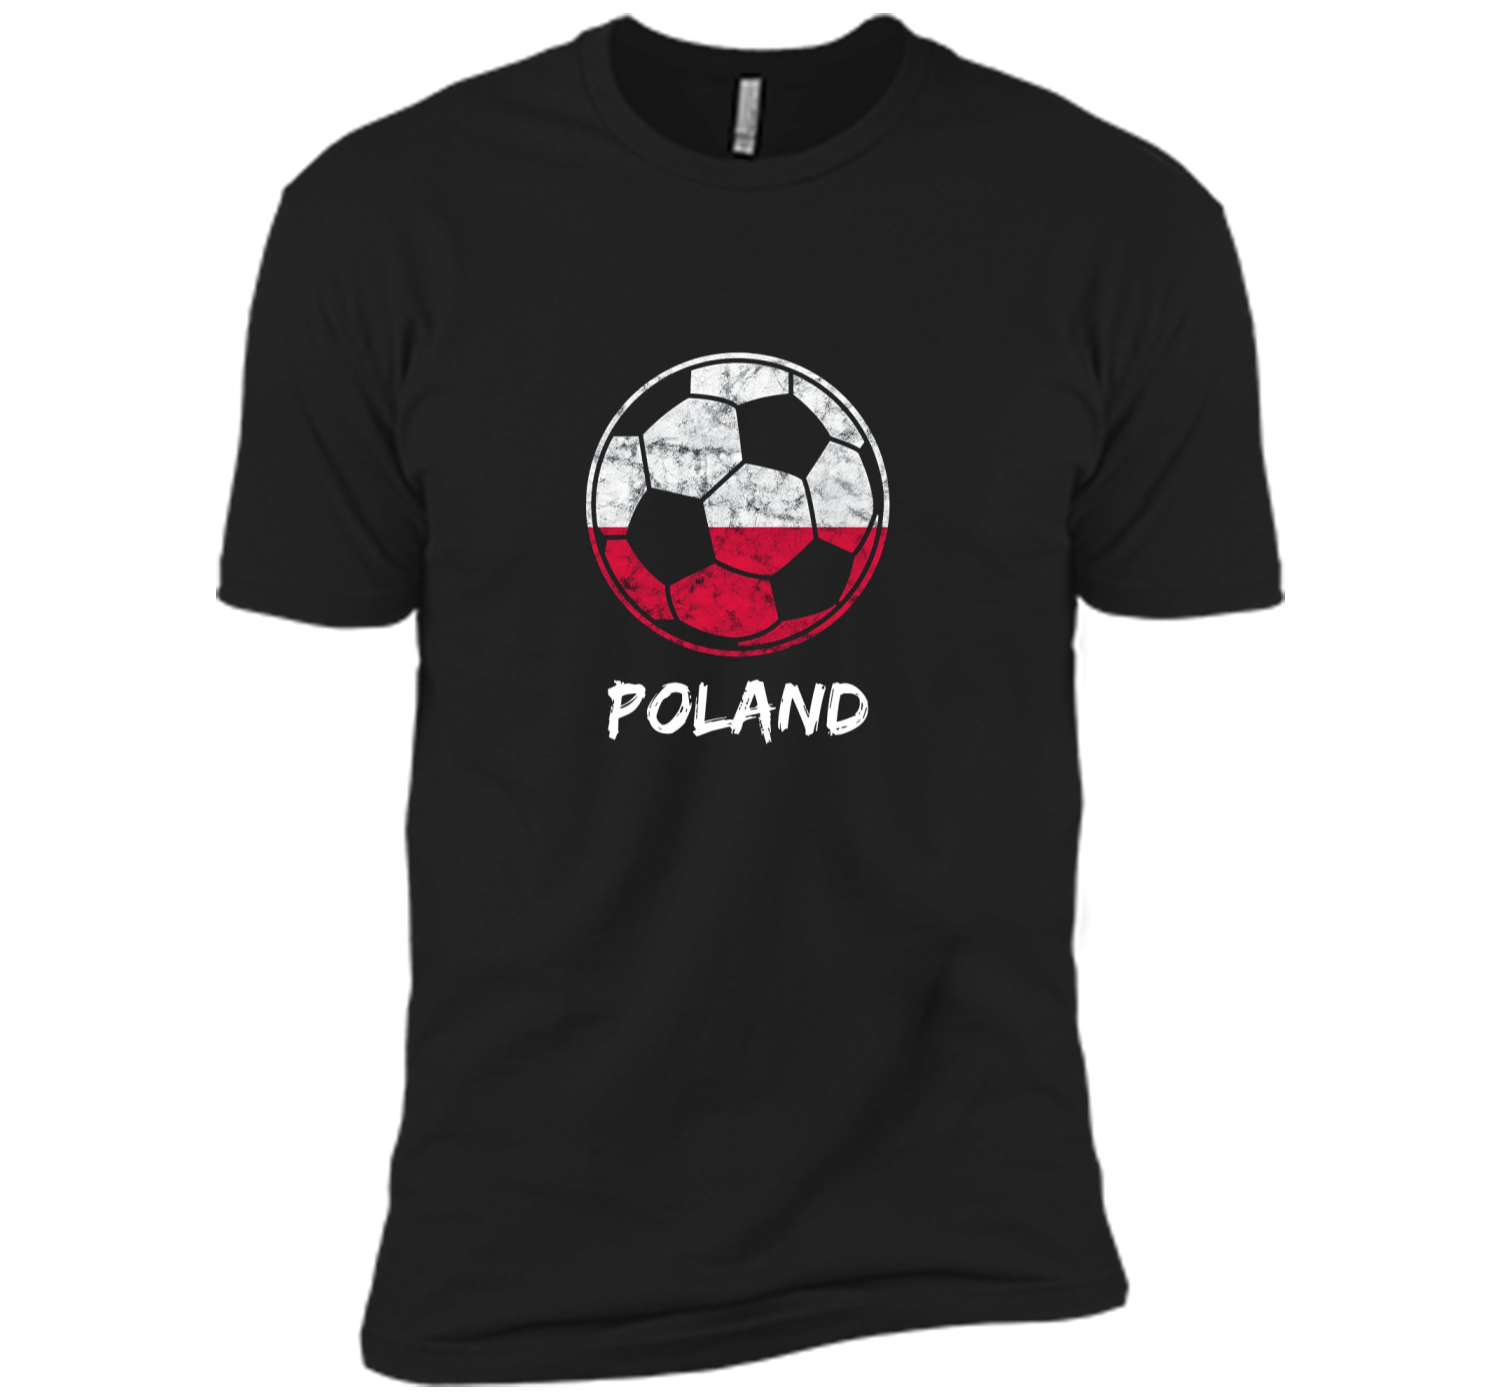 2018 Retro Distressed Poland Football and Soccer Cup Shirt